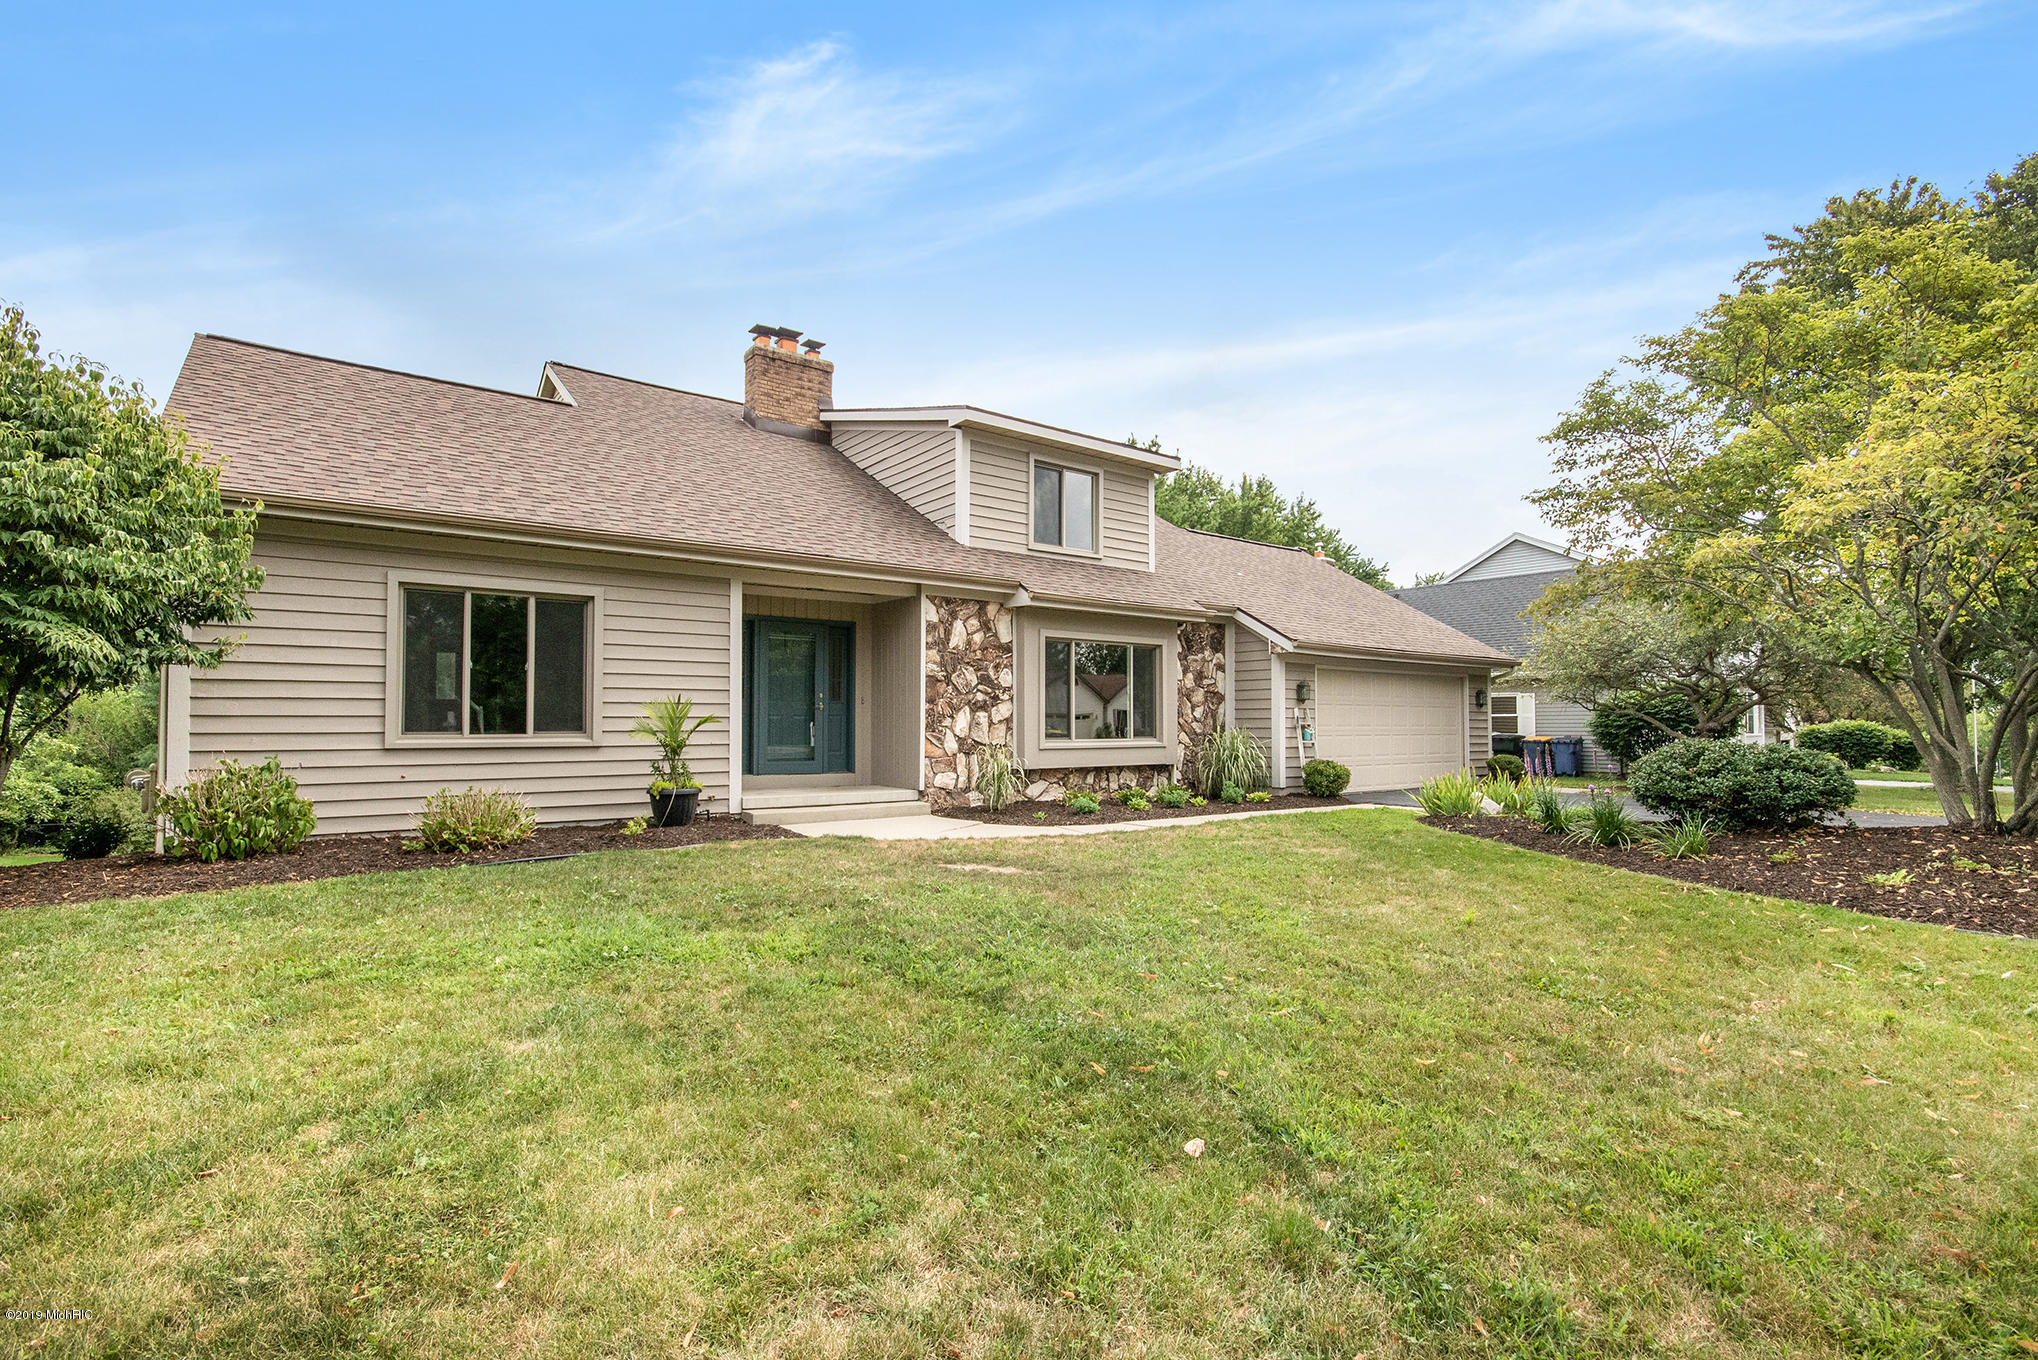 2651 Glencairin NW Drive, Grand Rapids, Michigan